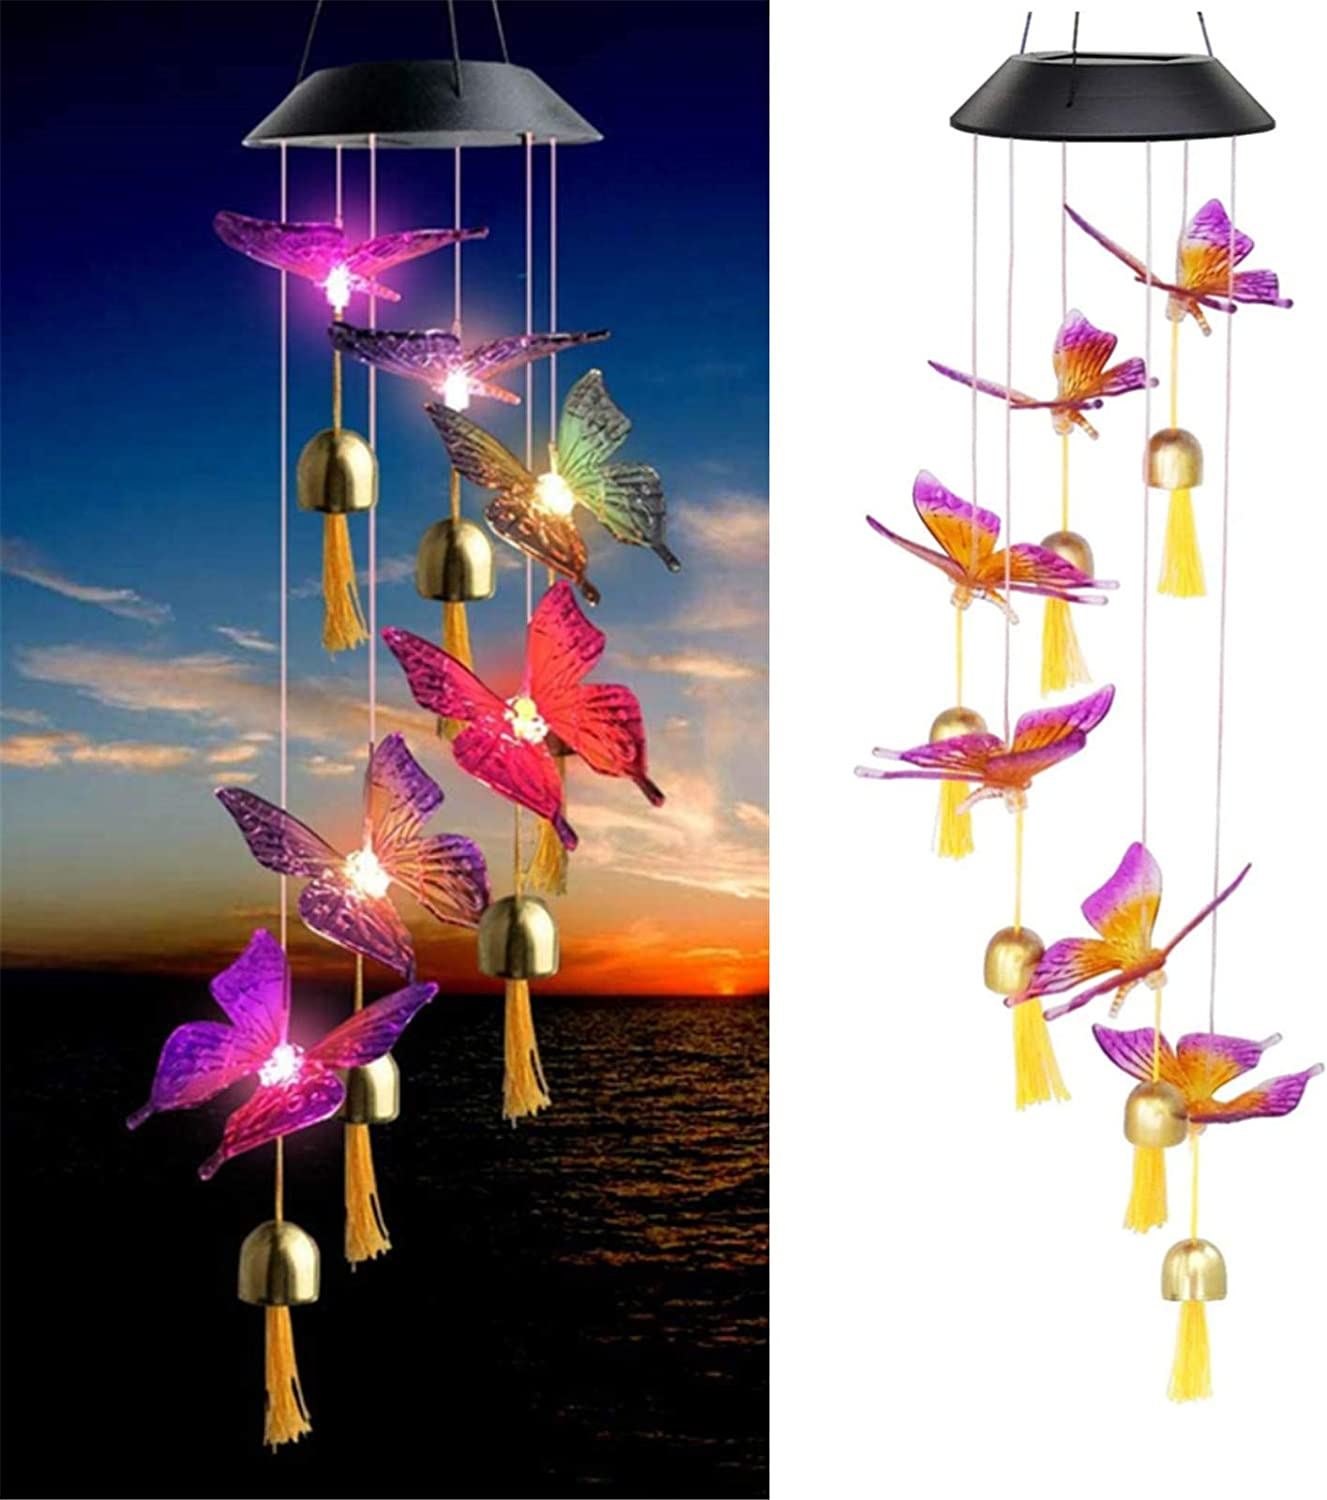 XingTong Solar Wind Chimes Butterfly Chimes Solar Lights Chimes Color Changing LED Wind Chimes Outdoor Solar Hanging Lights Garden Decor for Garden, Deck, Patio,Yard&Home (Butterfly)